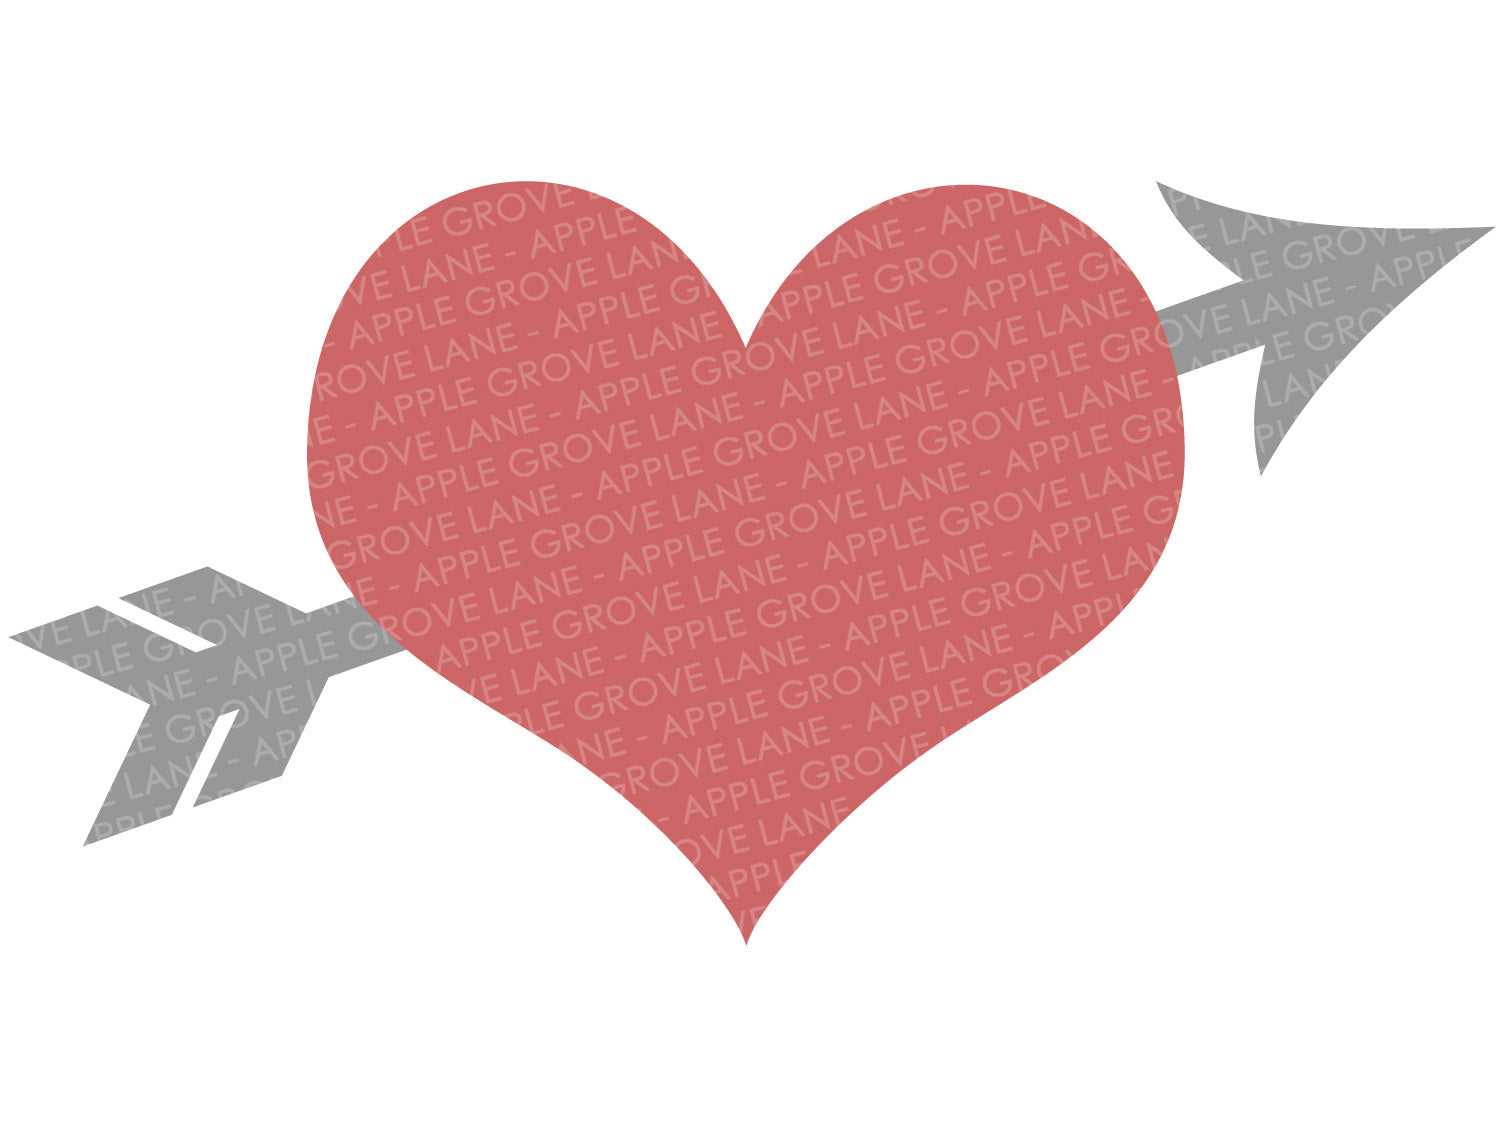 Valentine Heart Svg - Cupid Arrow Svg - Valentine Svg - Valentine's Day Svg - Cupid Svg - Arrow Svg - Love Svg - Heart Arrow Svg Eps Png Dxf